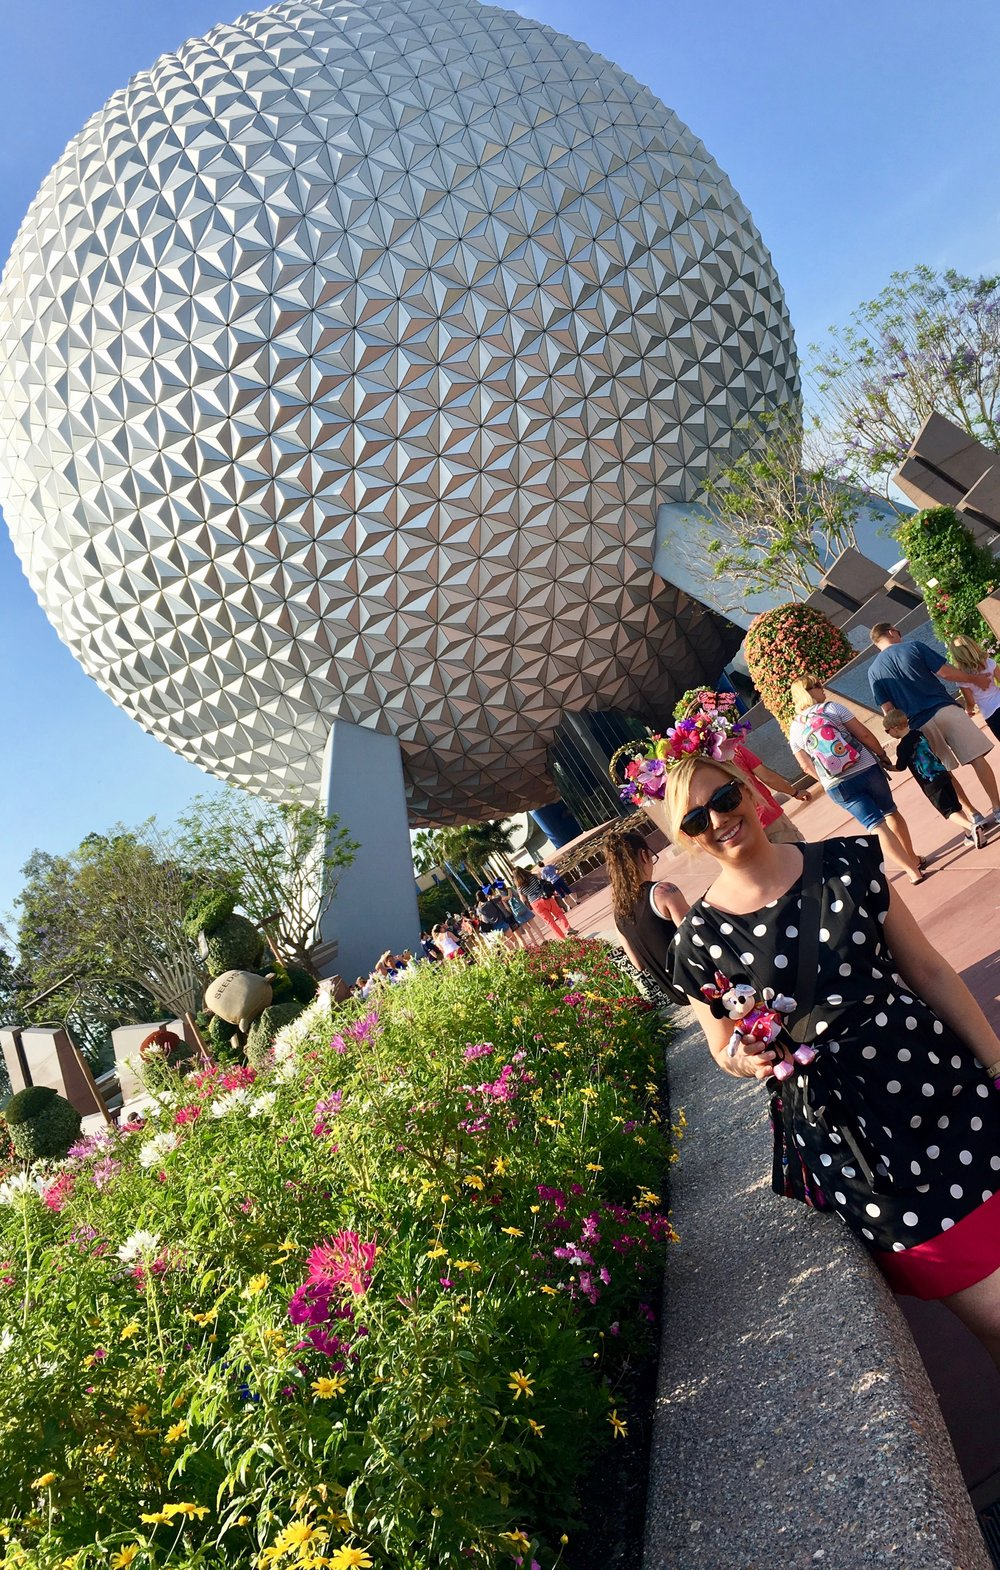 epcot-entrance-spaceship-earth.jpg